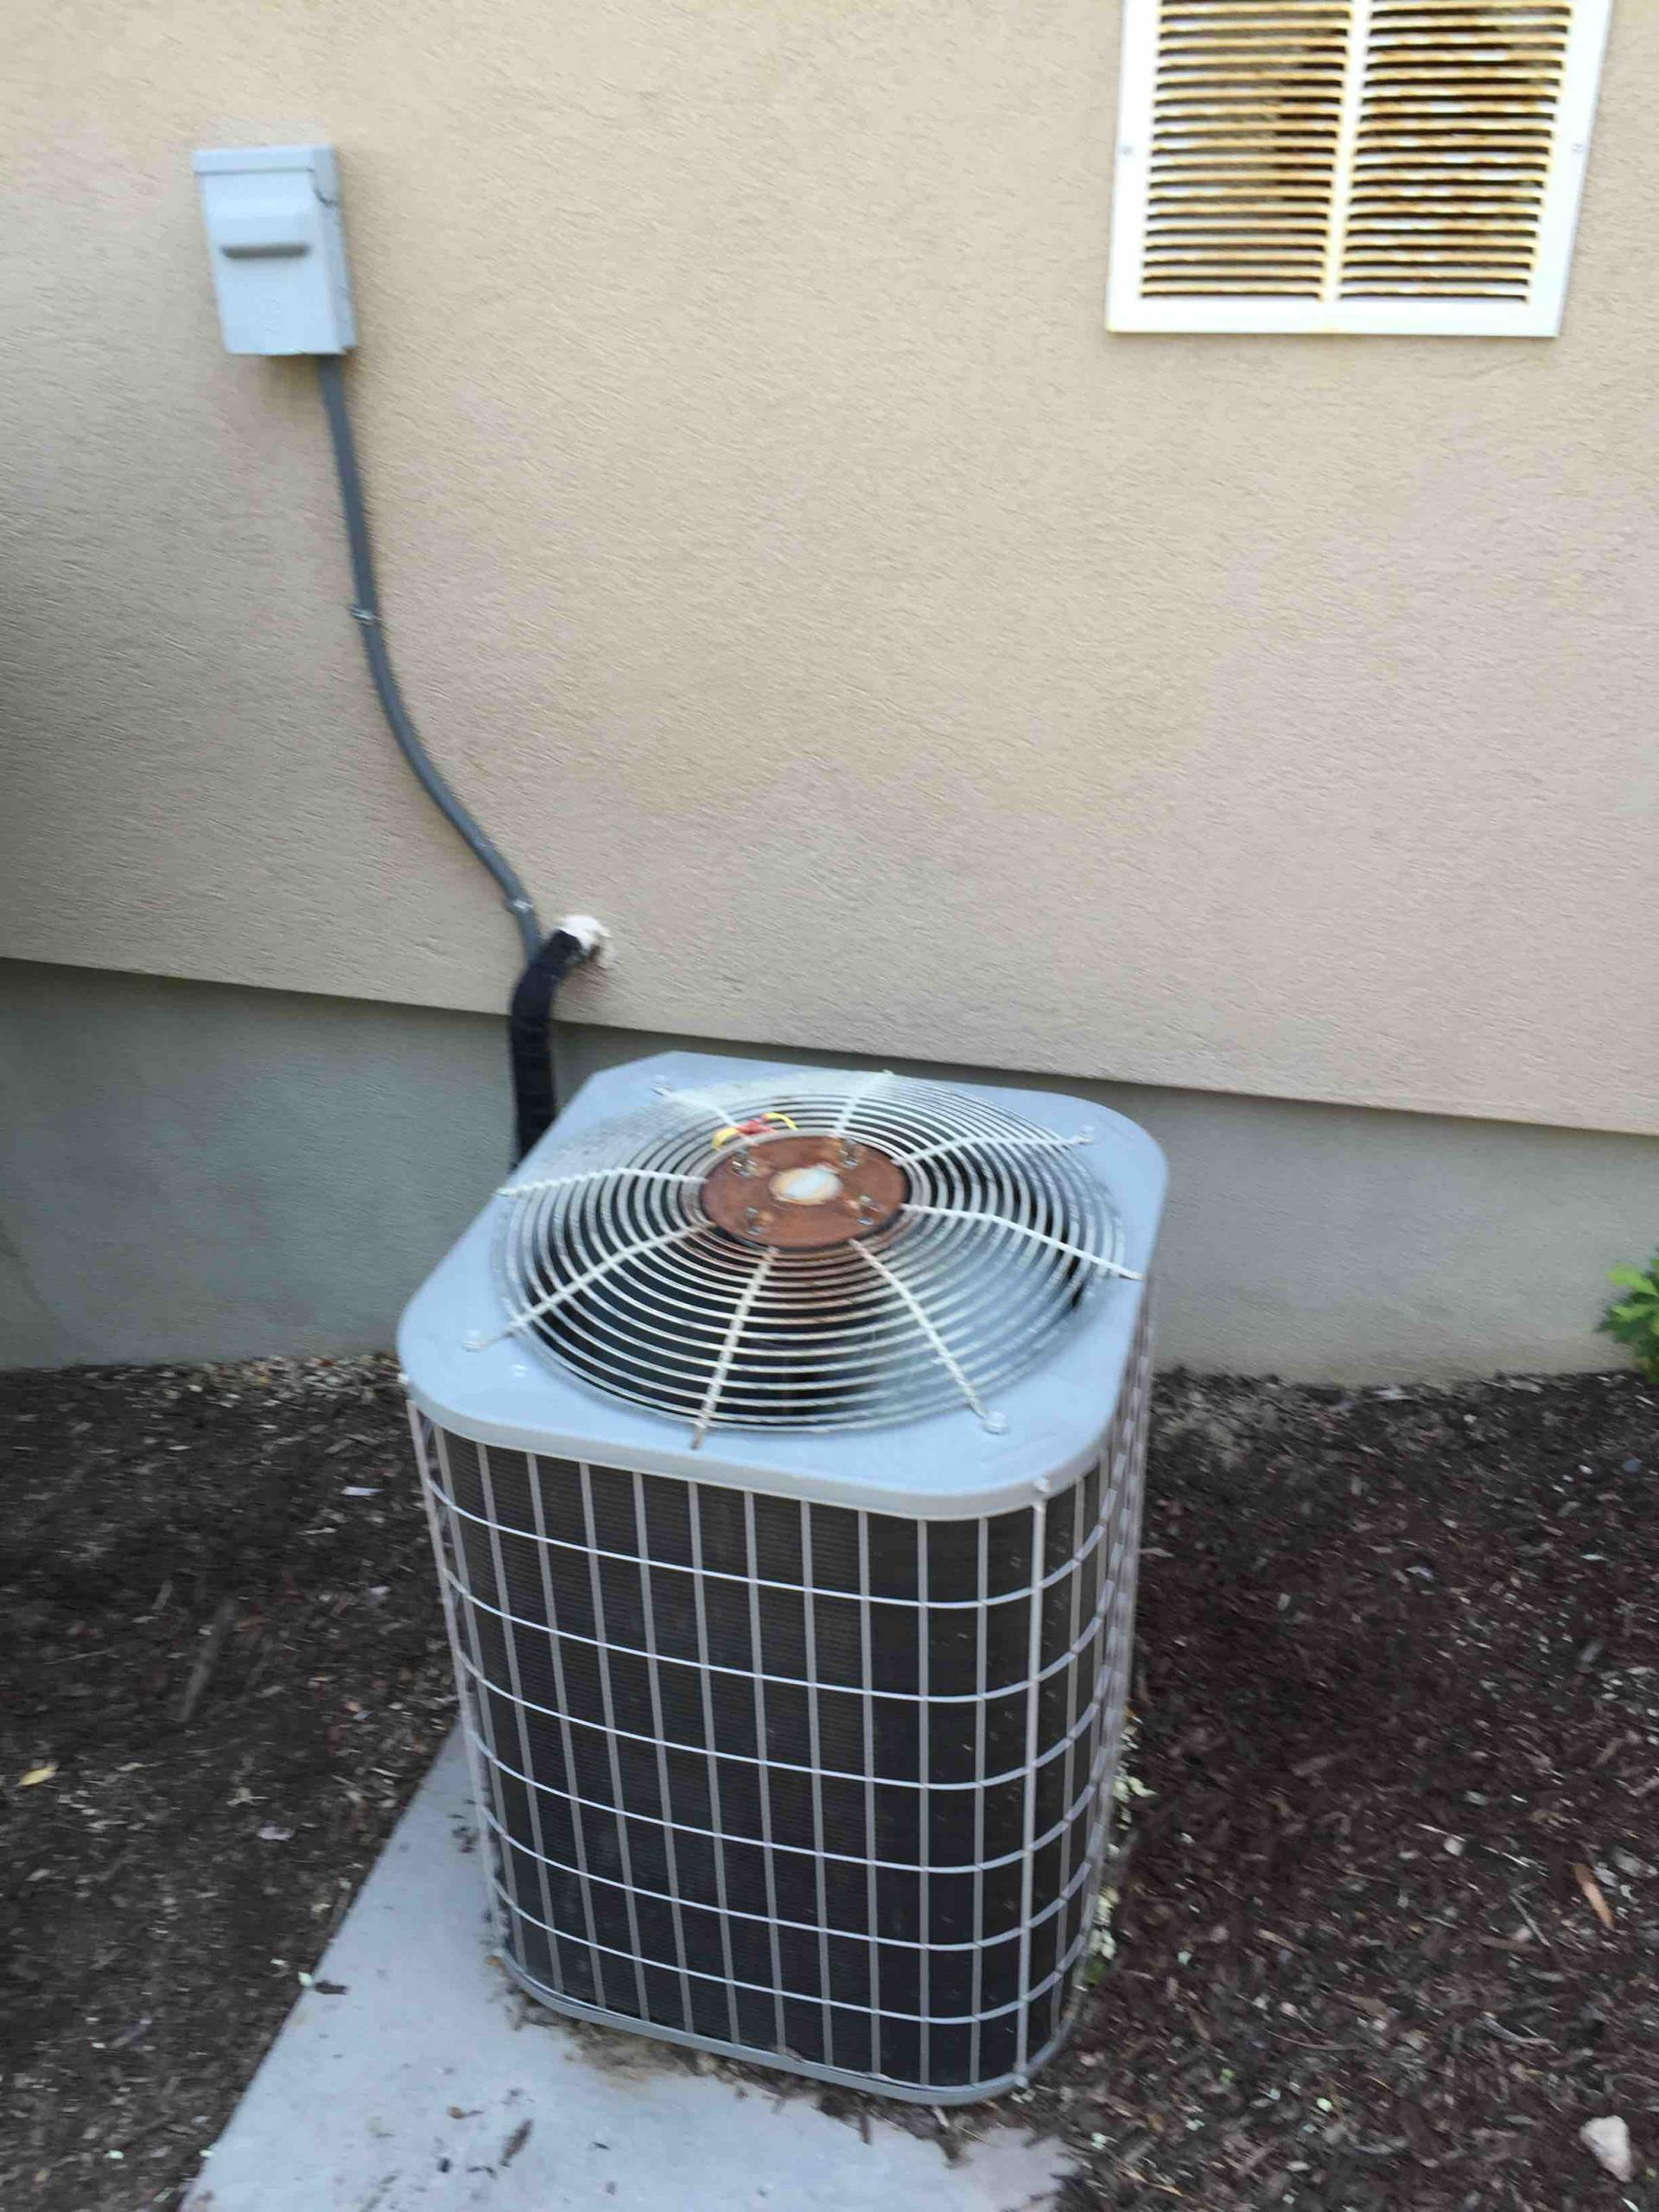 Draper, UT - Performed AC repair.  What timely service!